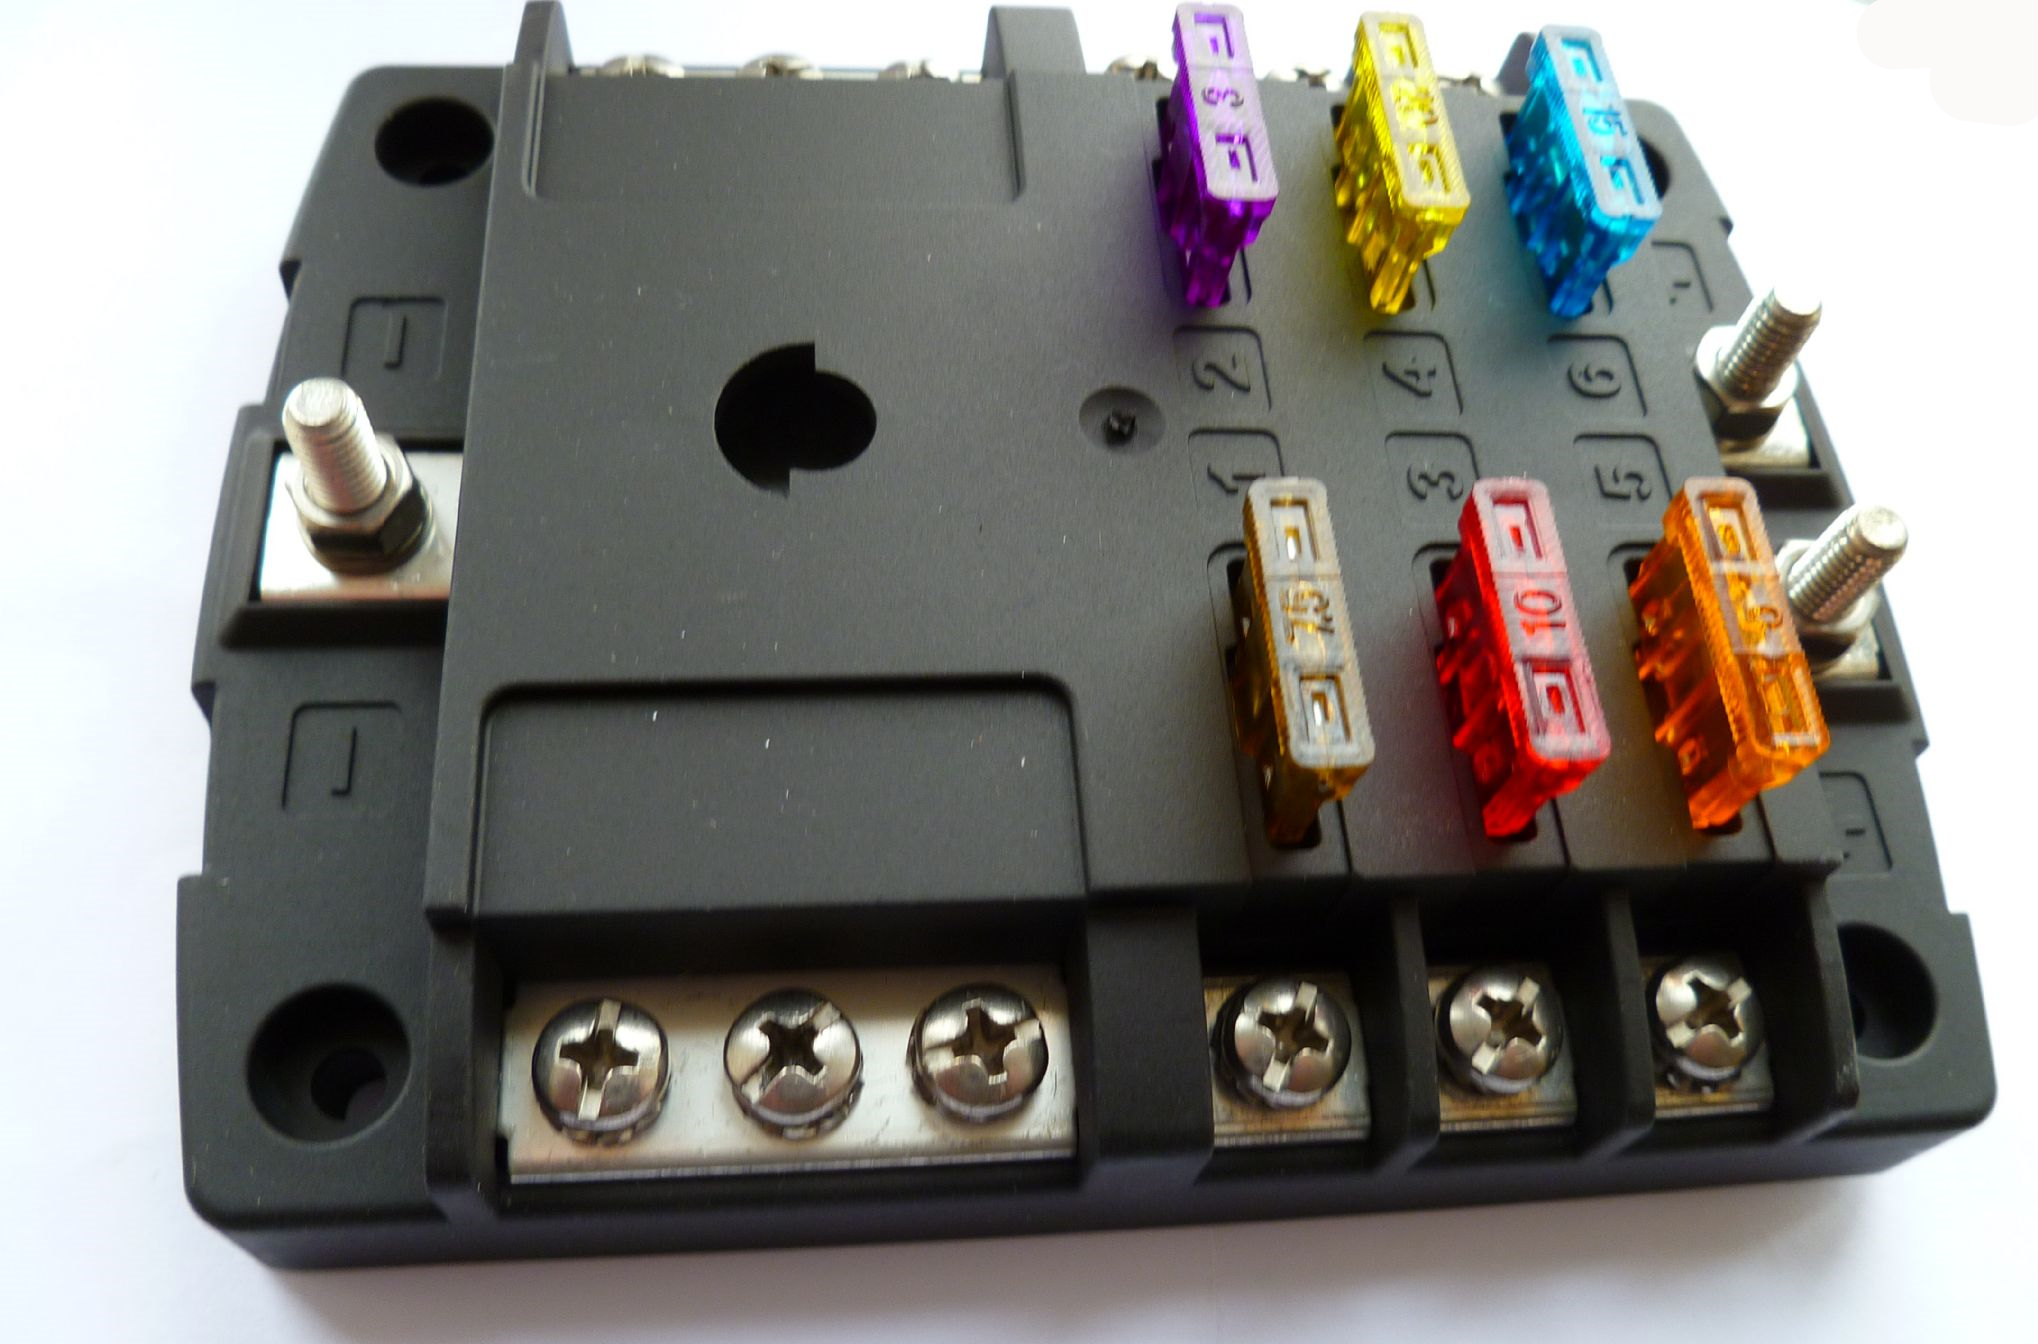 6 way heavy duty blade type fusebox with twin input positive busbar 1 x negative busbar. alt fh5025b [2] 5222 p 6 way heavy duty blade type fusebox with twin input positive busbar fuse box at creativeand.co